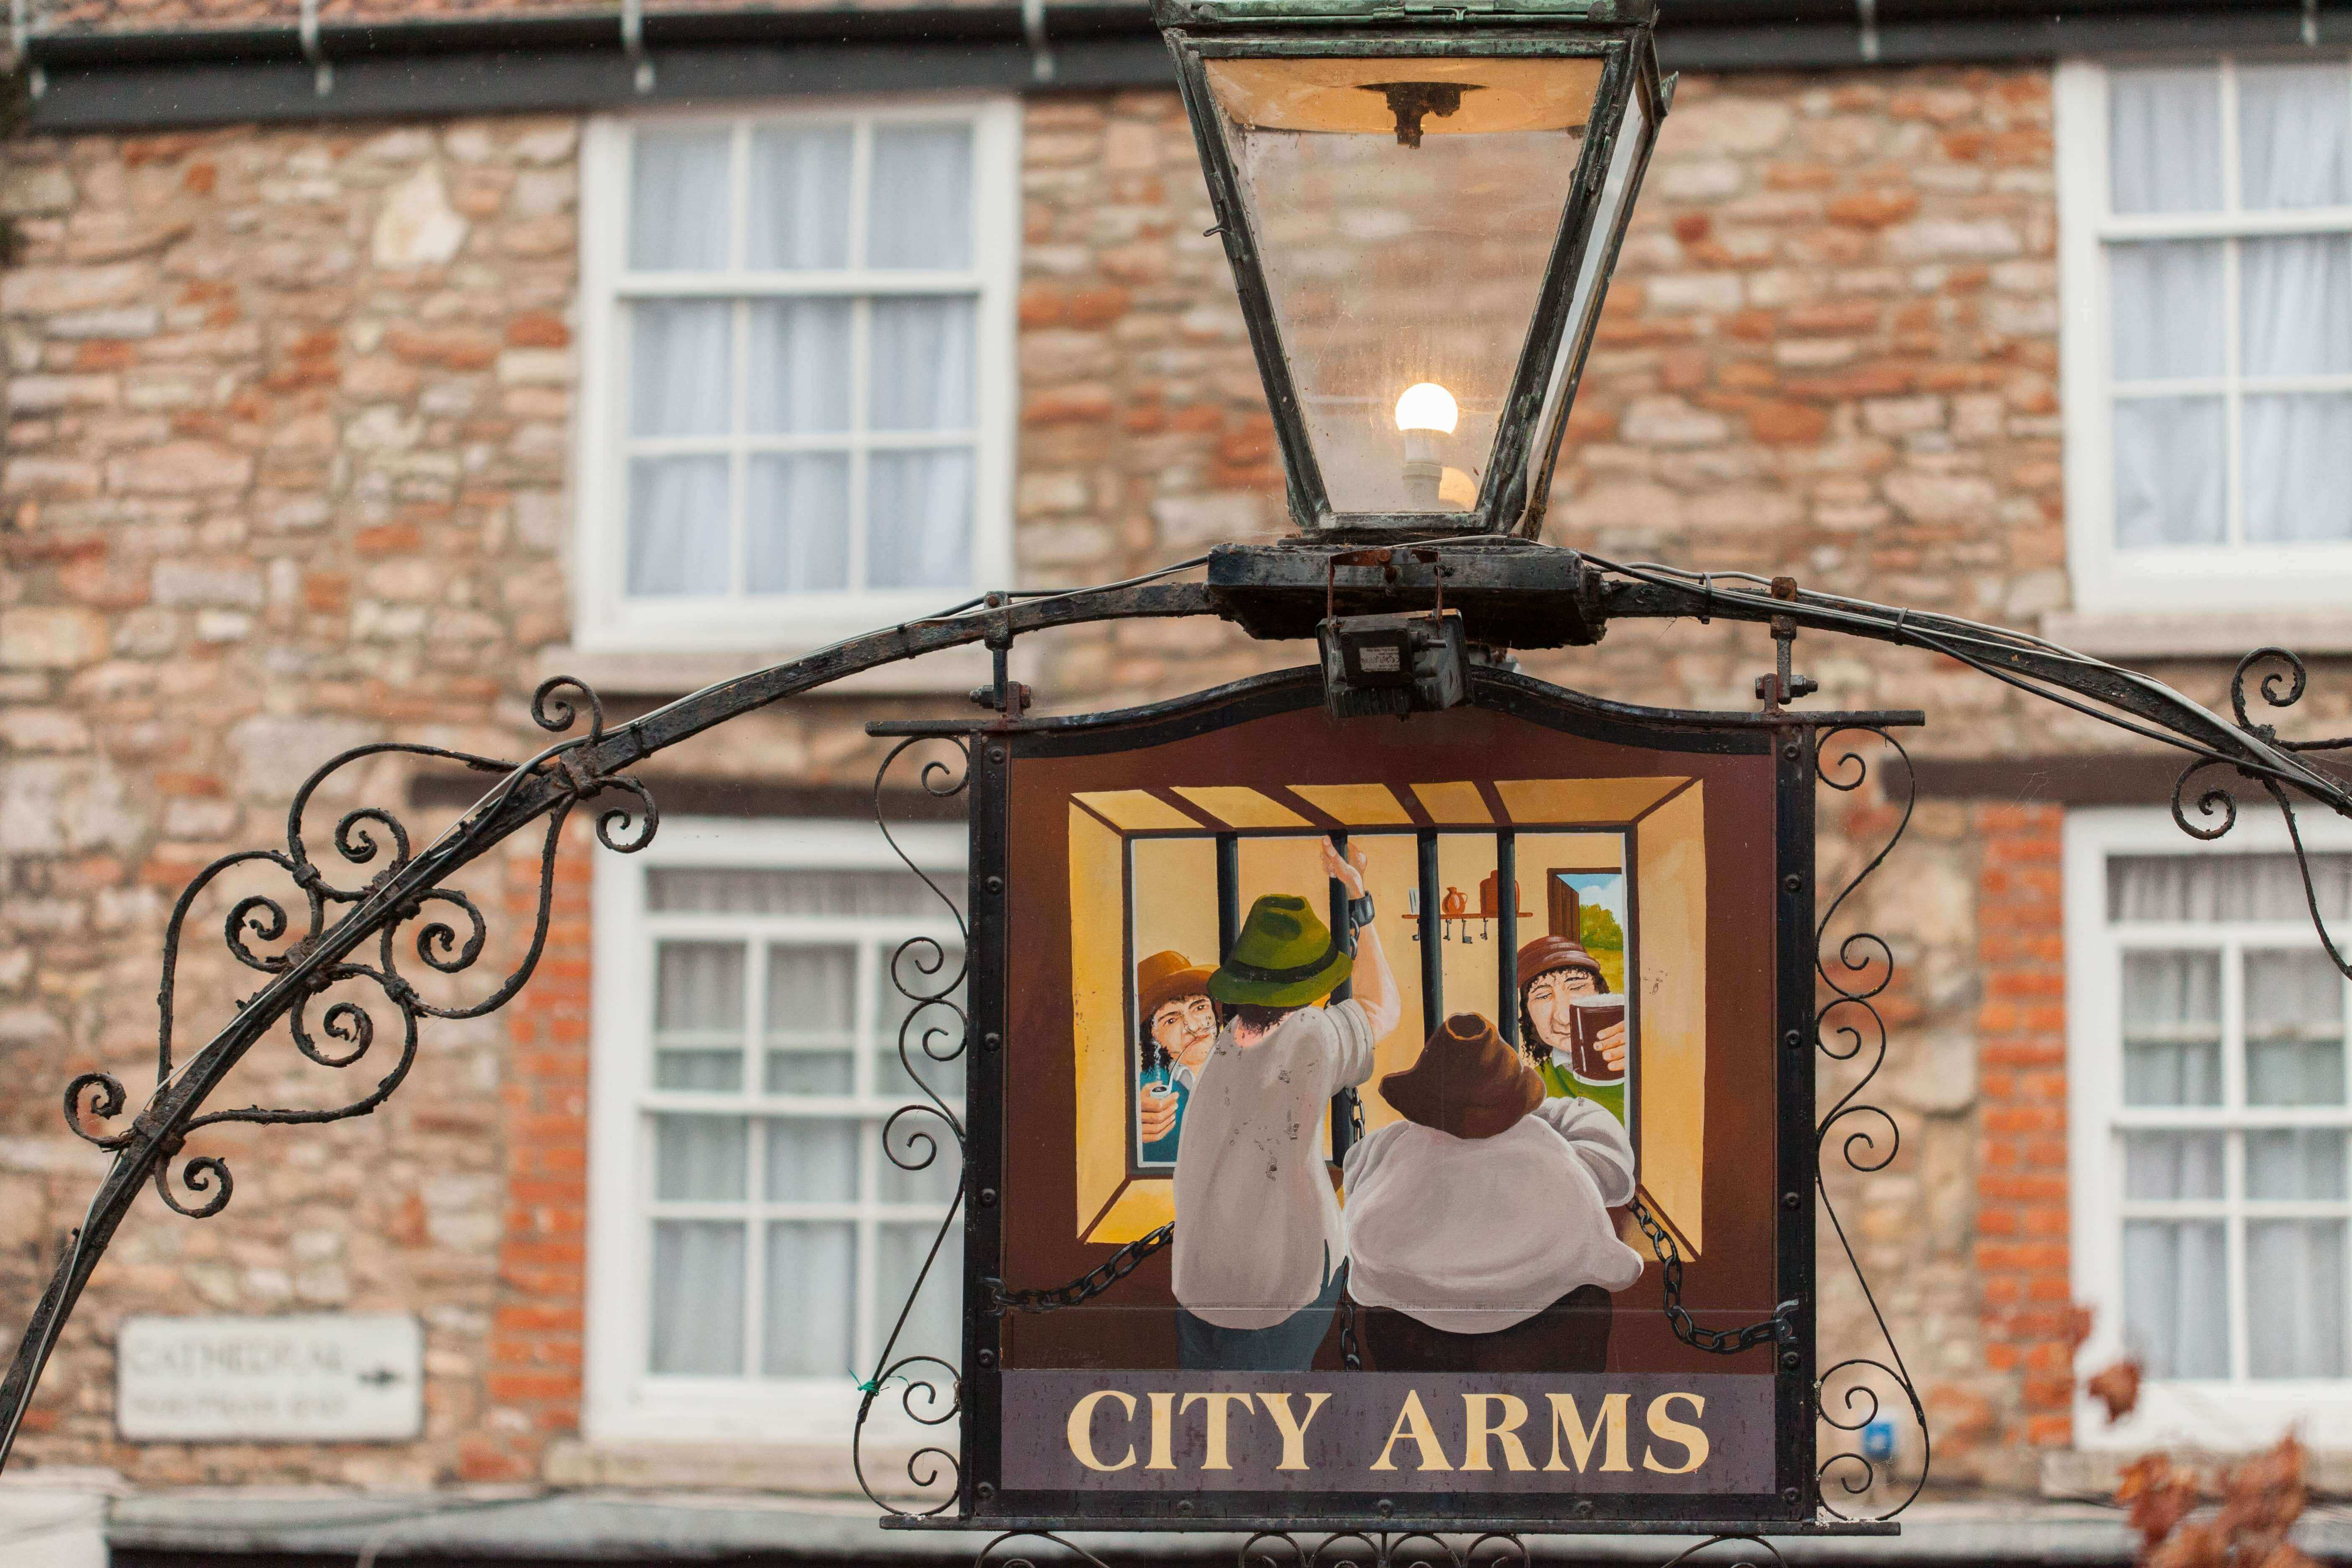 City Arms photo gallery